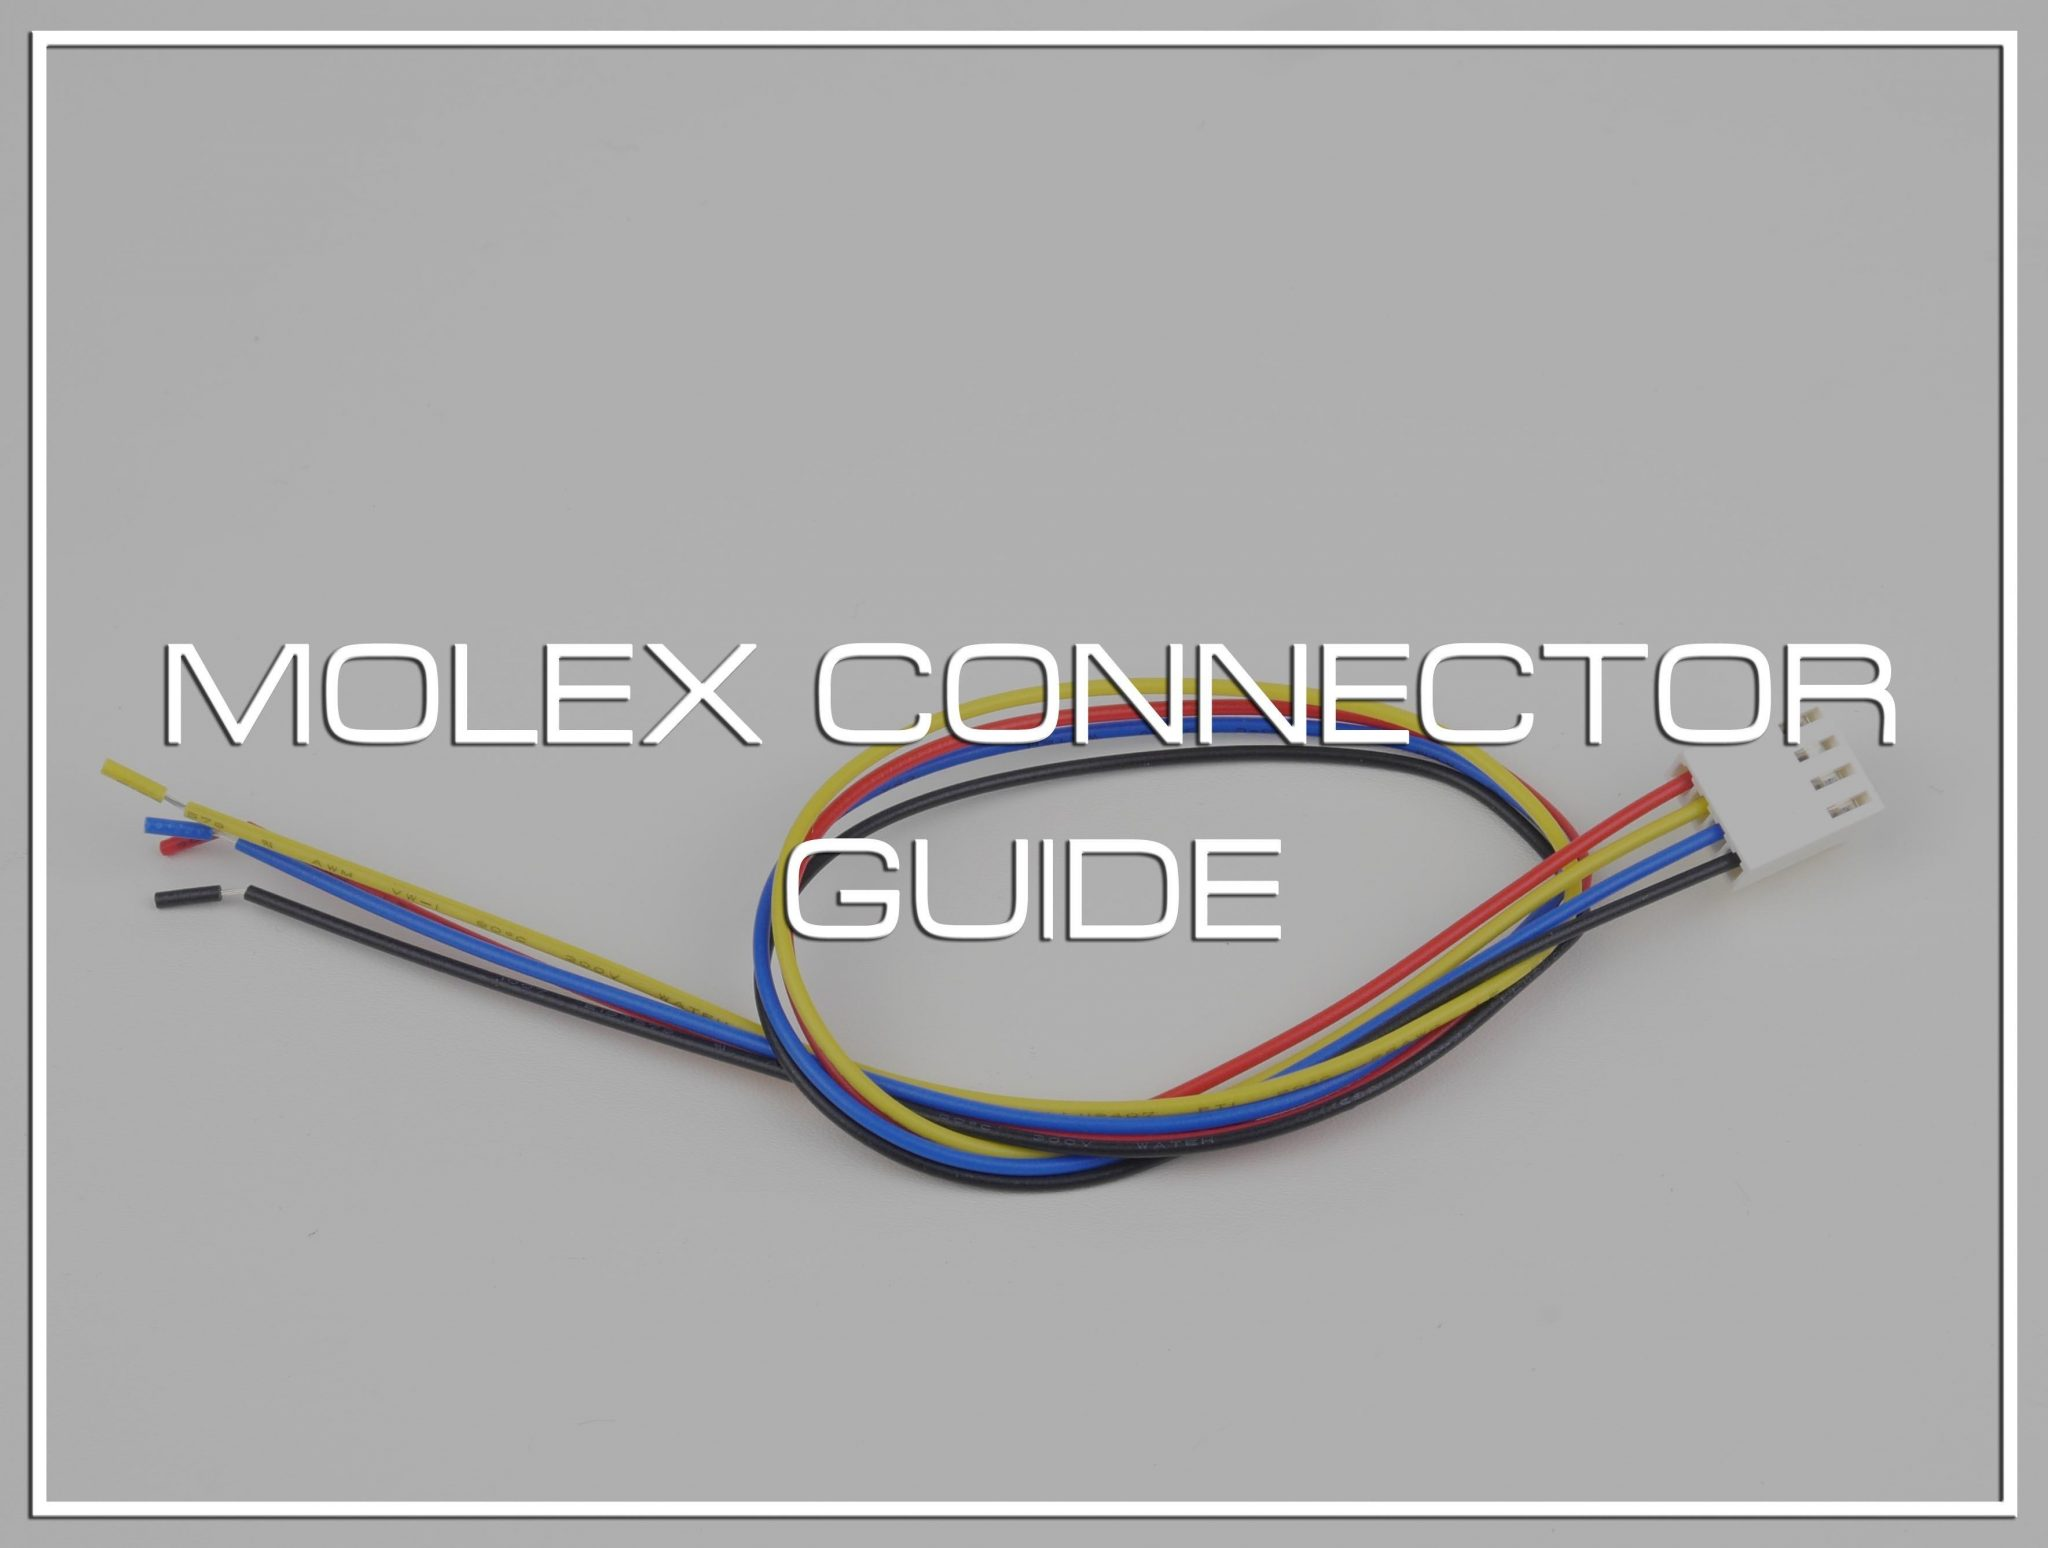 Molex Connector Guide for You